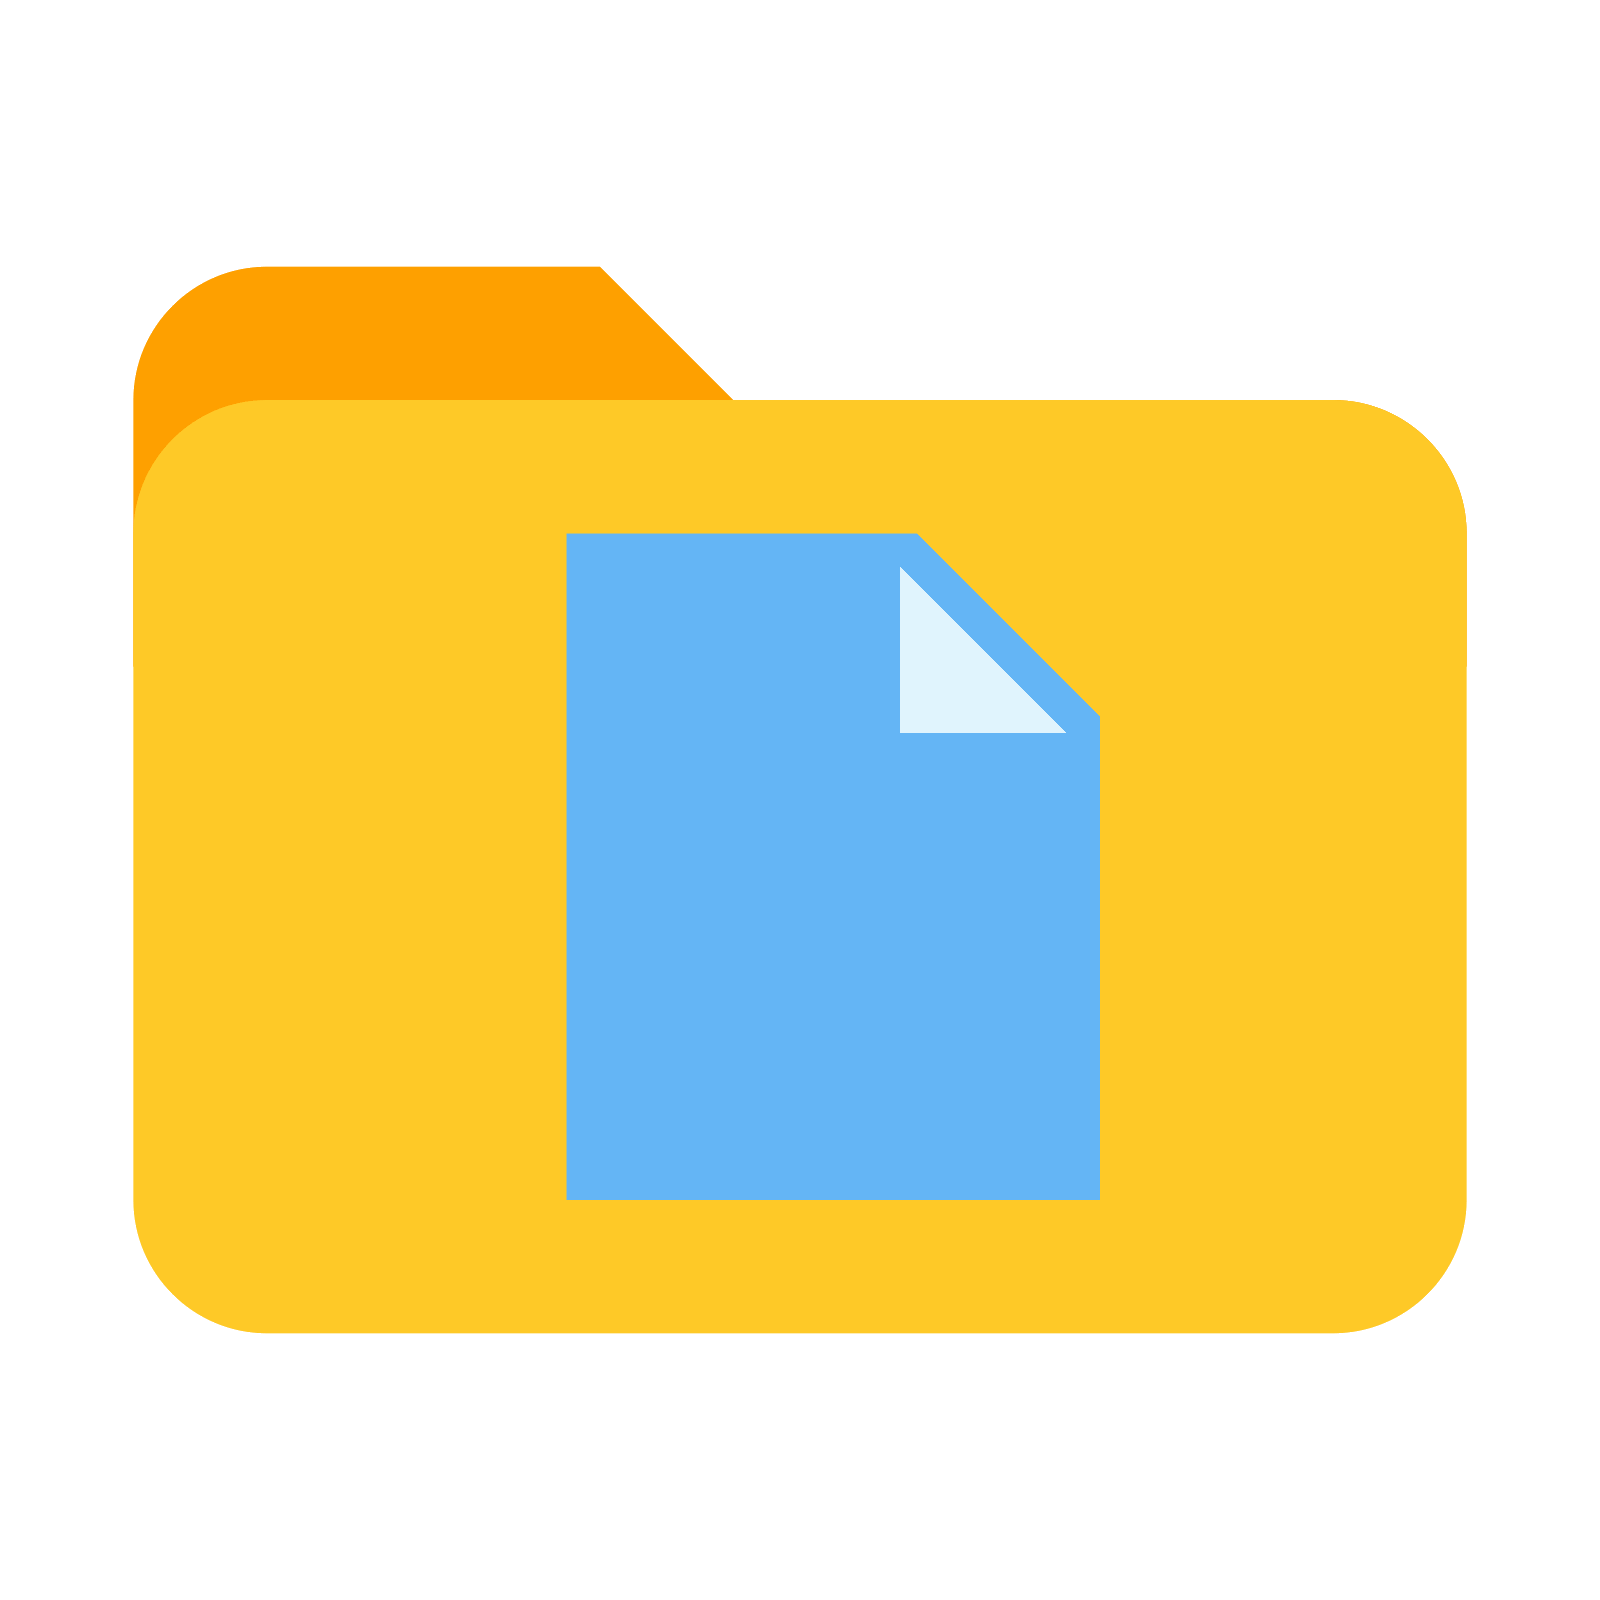 Windows 10 folder png. Documents icon free download